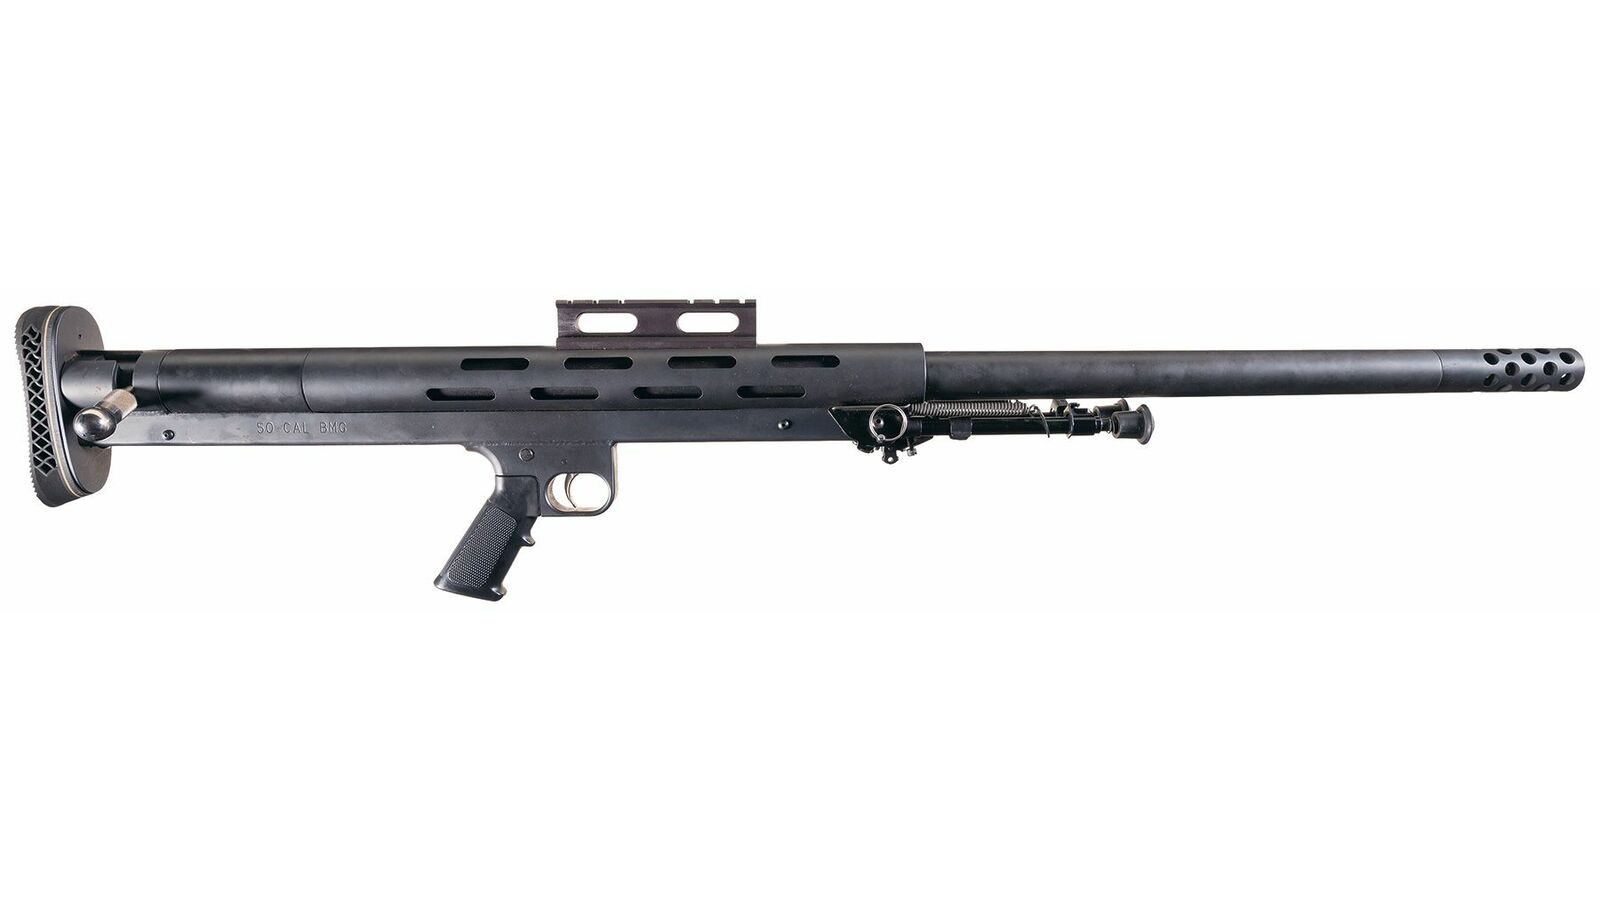 Lar Grizzly Big Boar Single Shot Bolt Action Rifle In 50 Bmg